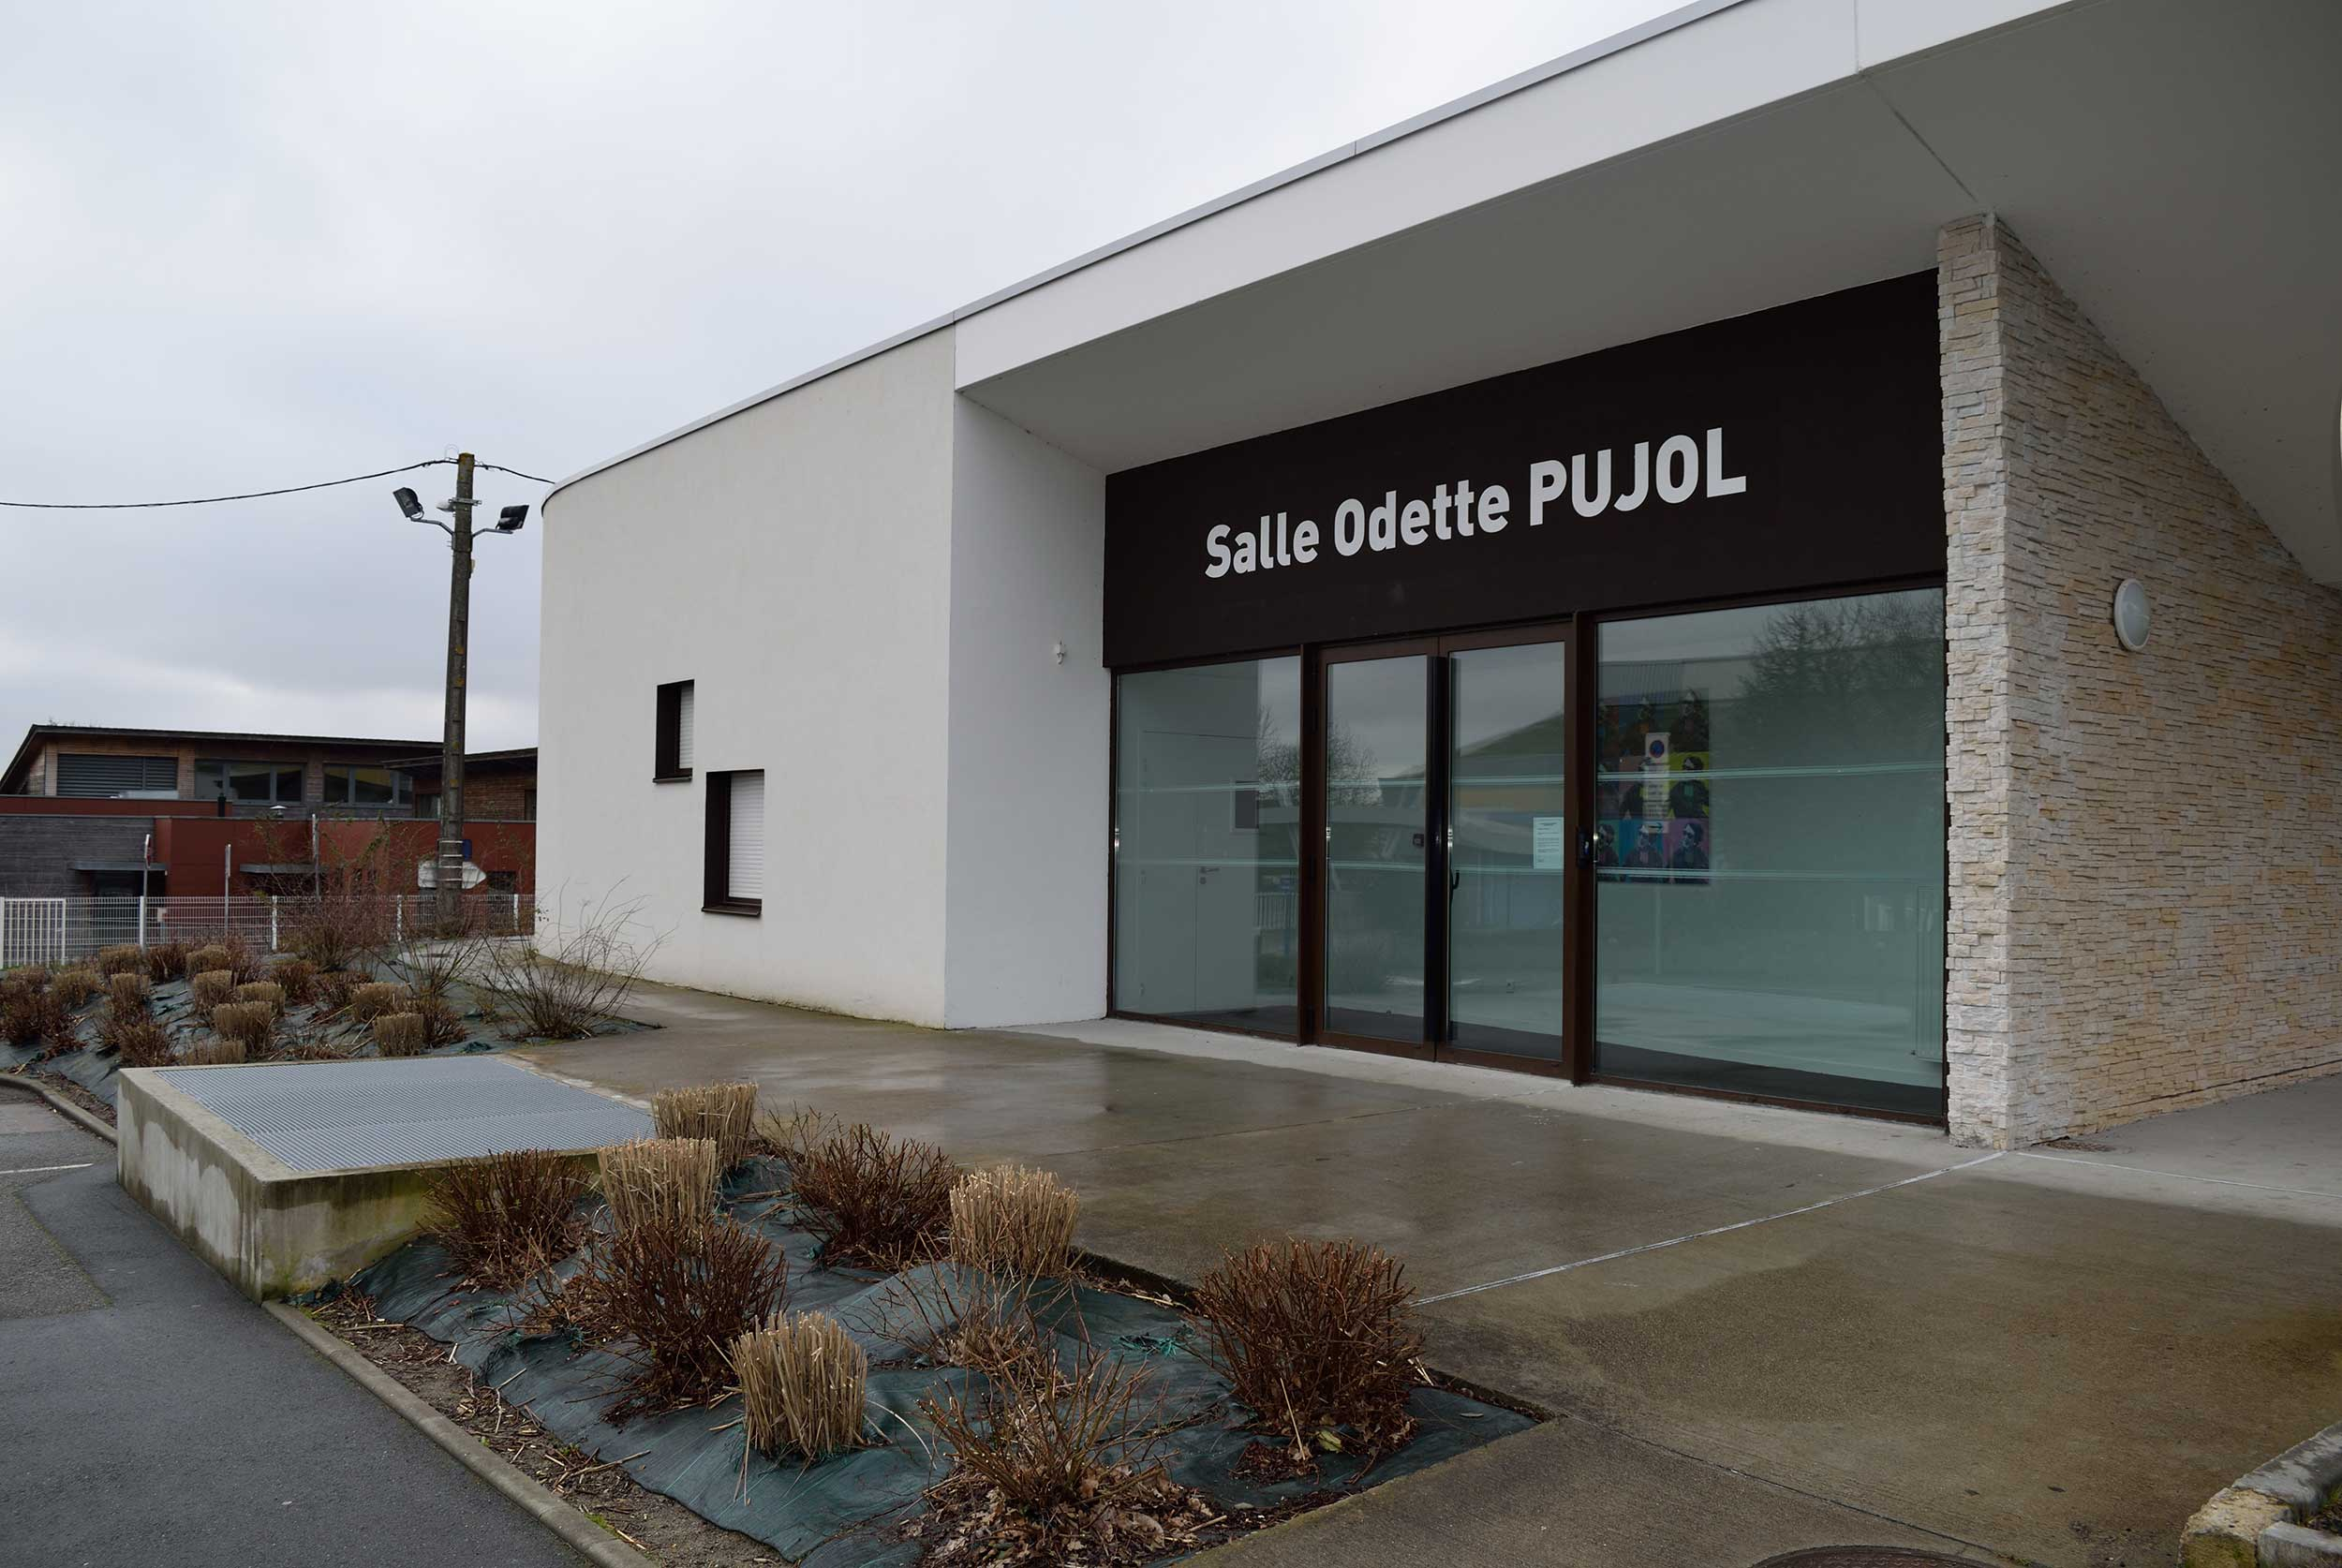 http://www.thouare.fr/wp-content/uploads/2017/03/Salle-municipale-Odette-Pujol.jpg